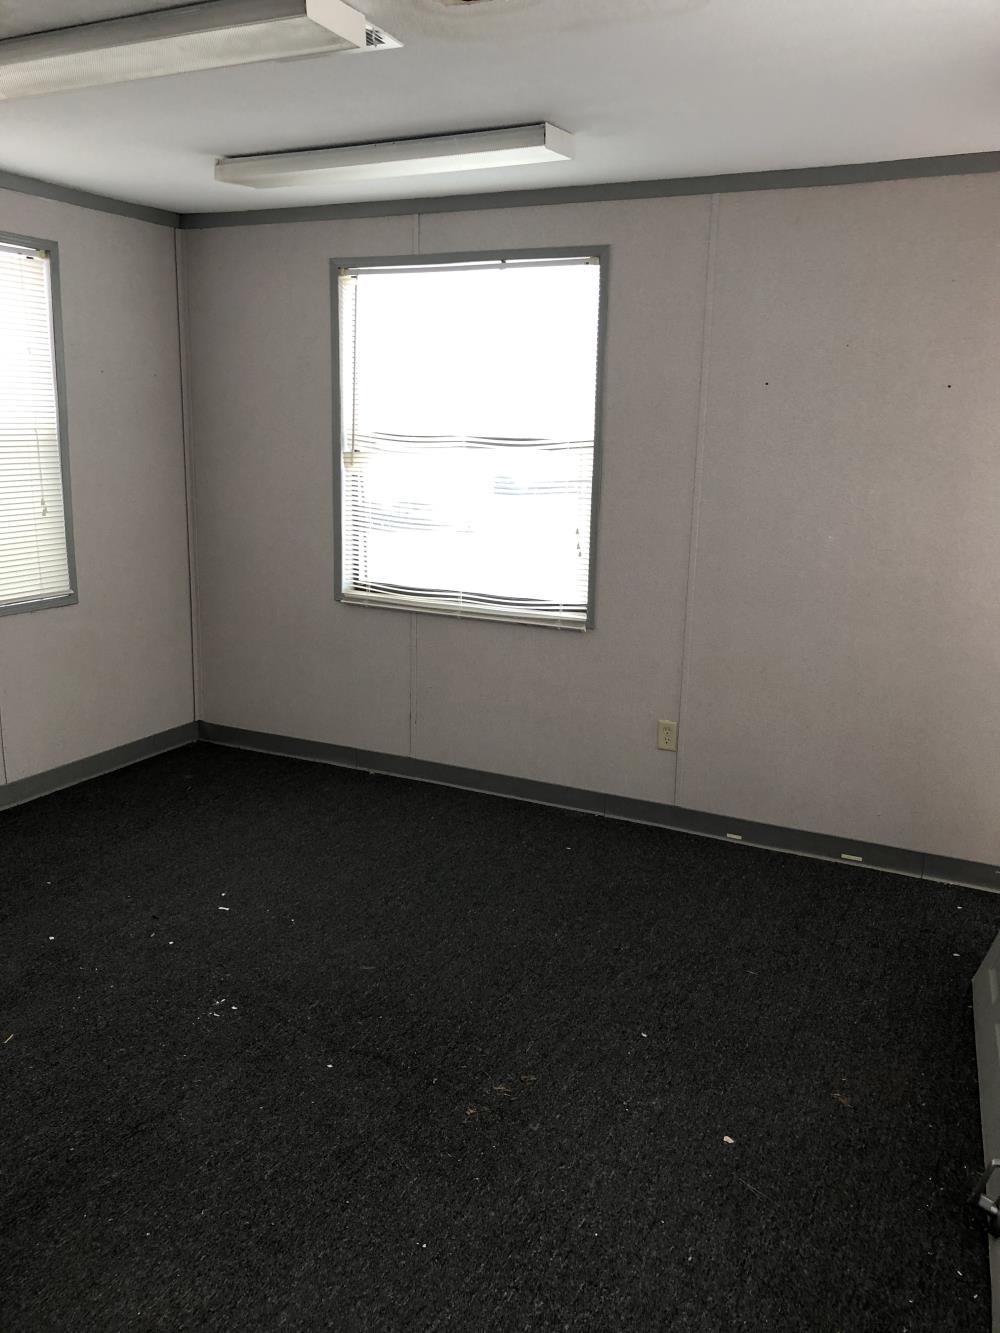 64'x28' Section Modular for sale in Dallas North - CPX-108255 -7